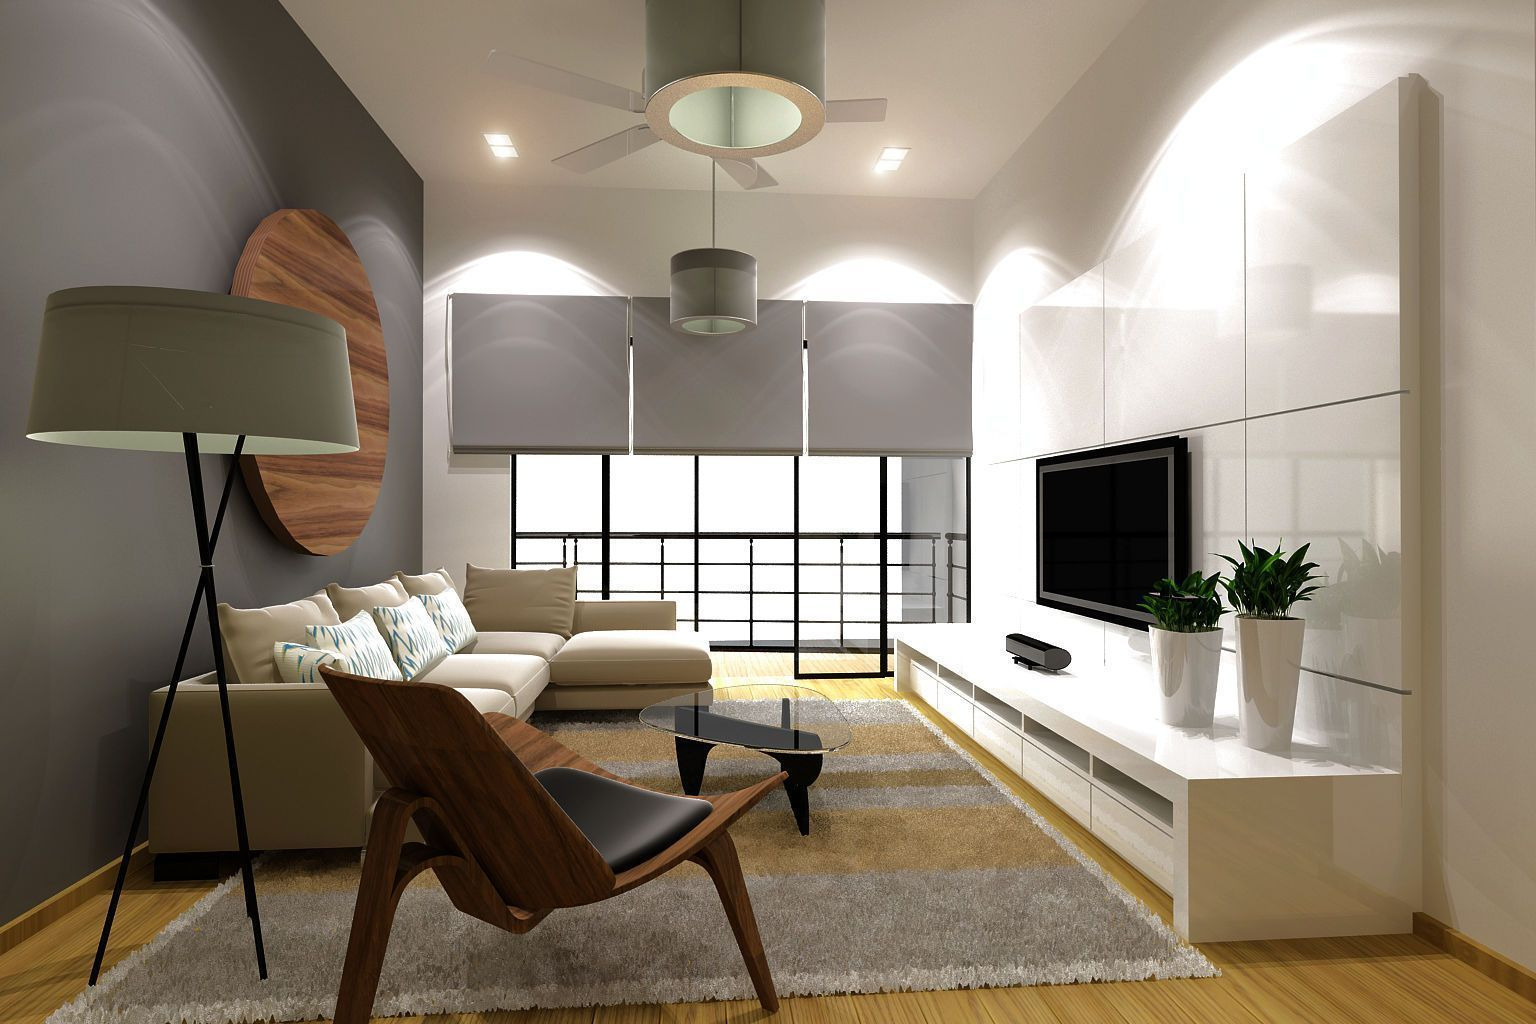 Feng Shui Living Room Layout Condo Interior Design Ideasliving Room Fengshui Livingroom Modern Condo Living Room Condo Interior Design Condo Living Room